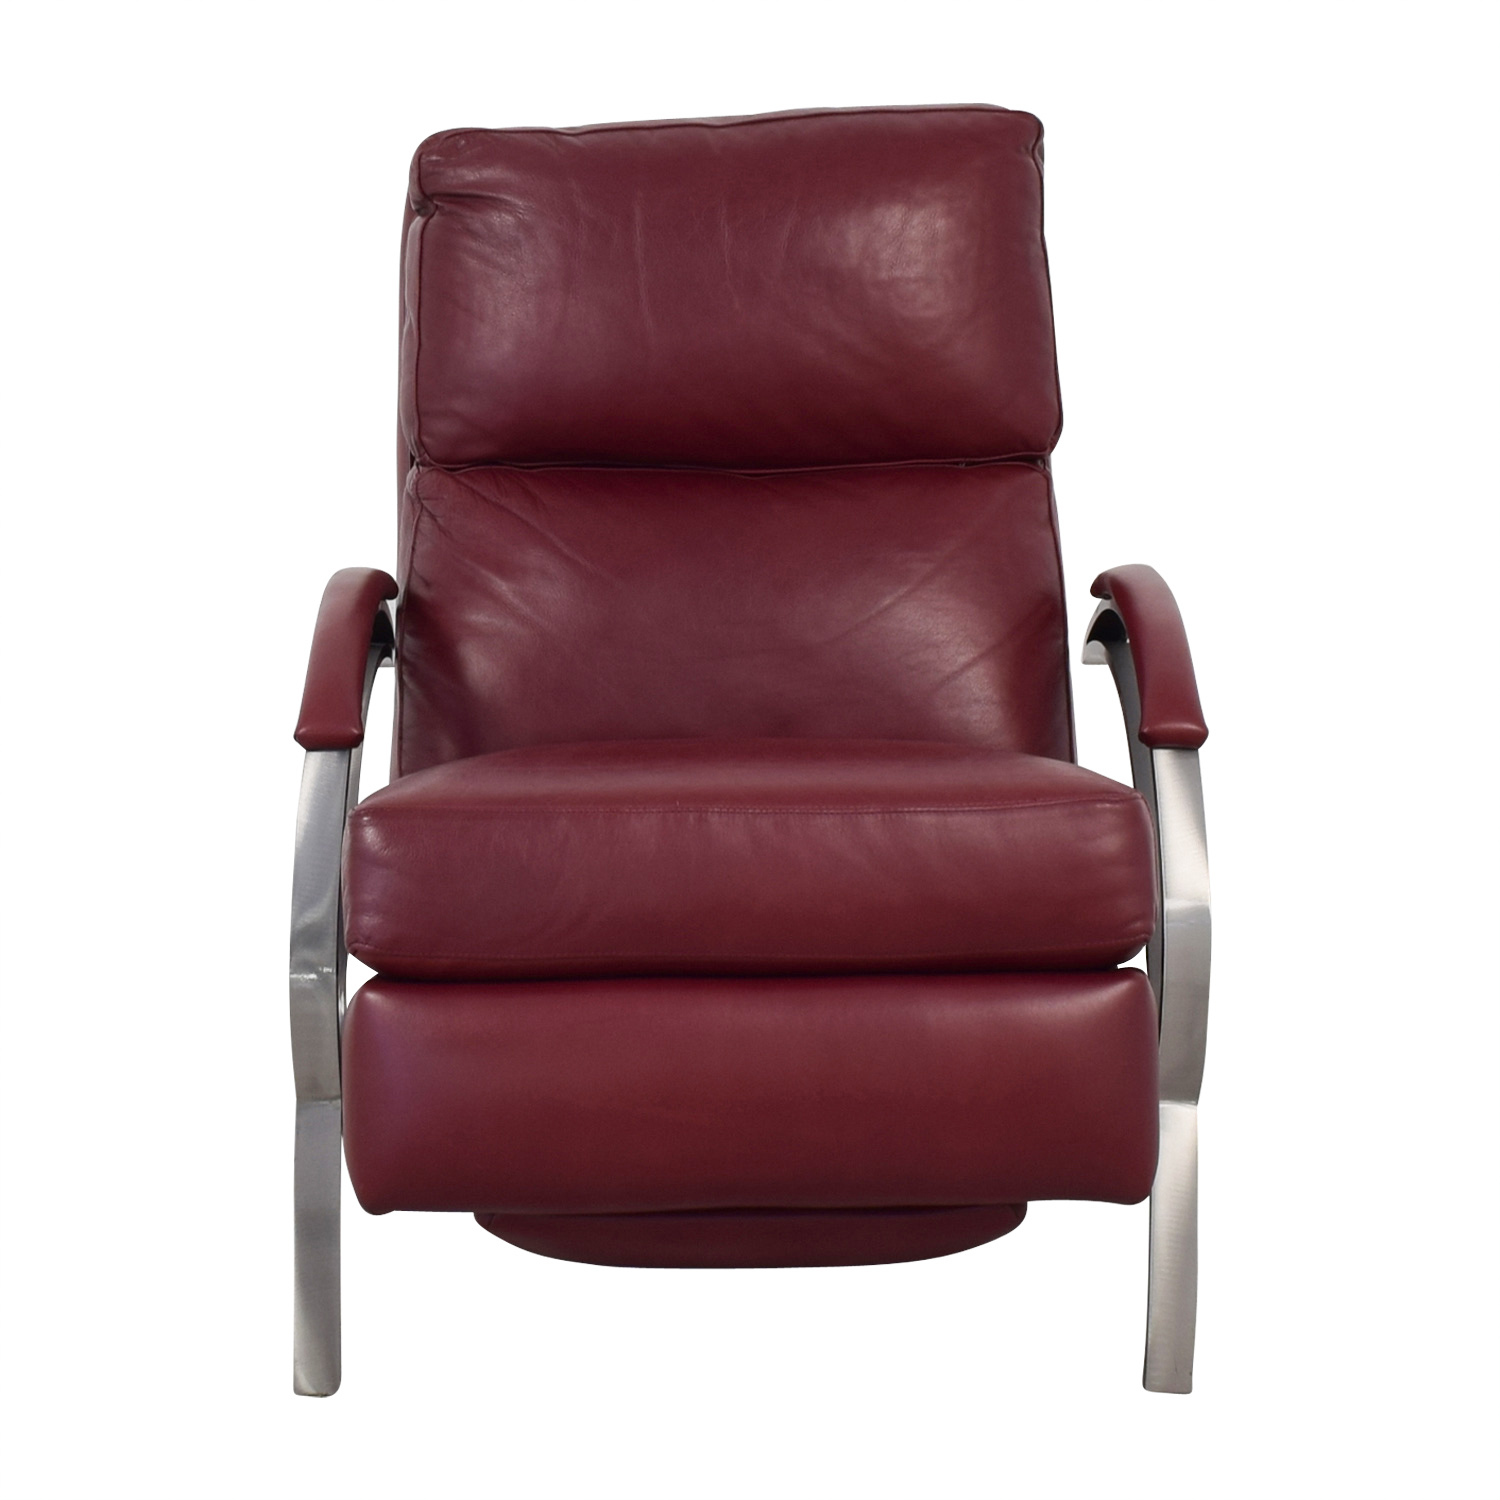 Bloomingdale's Bloomingdale's Loop Recliner nj